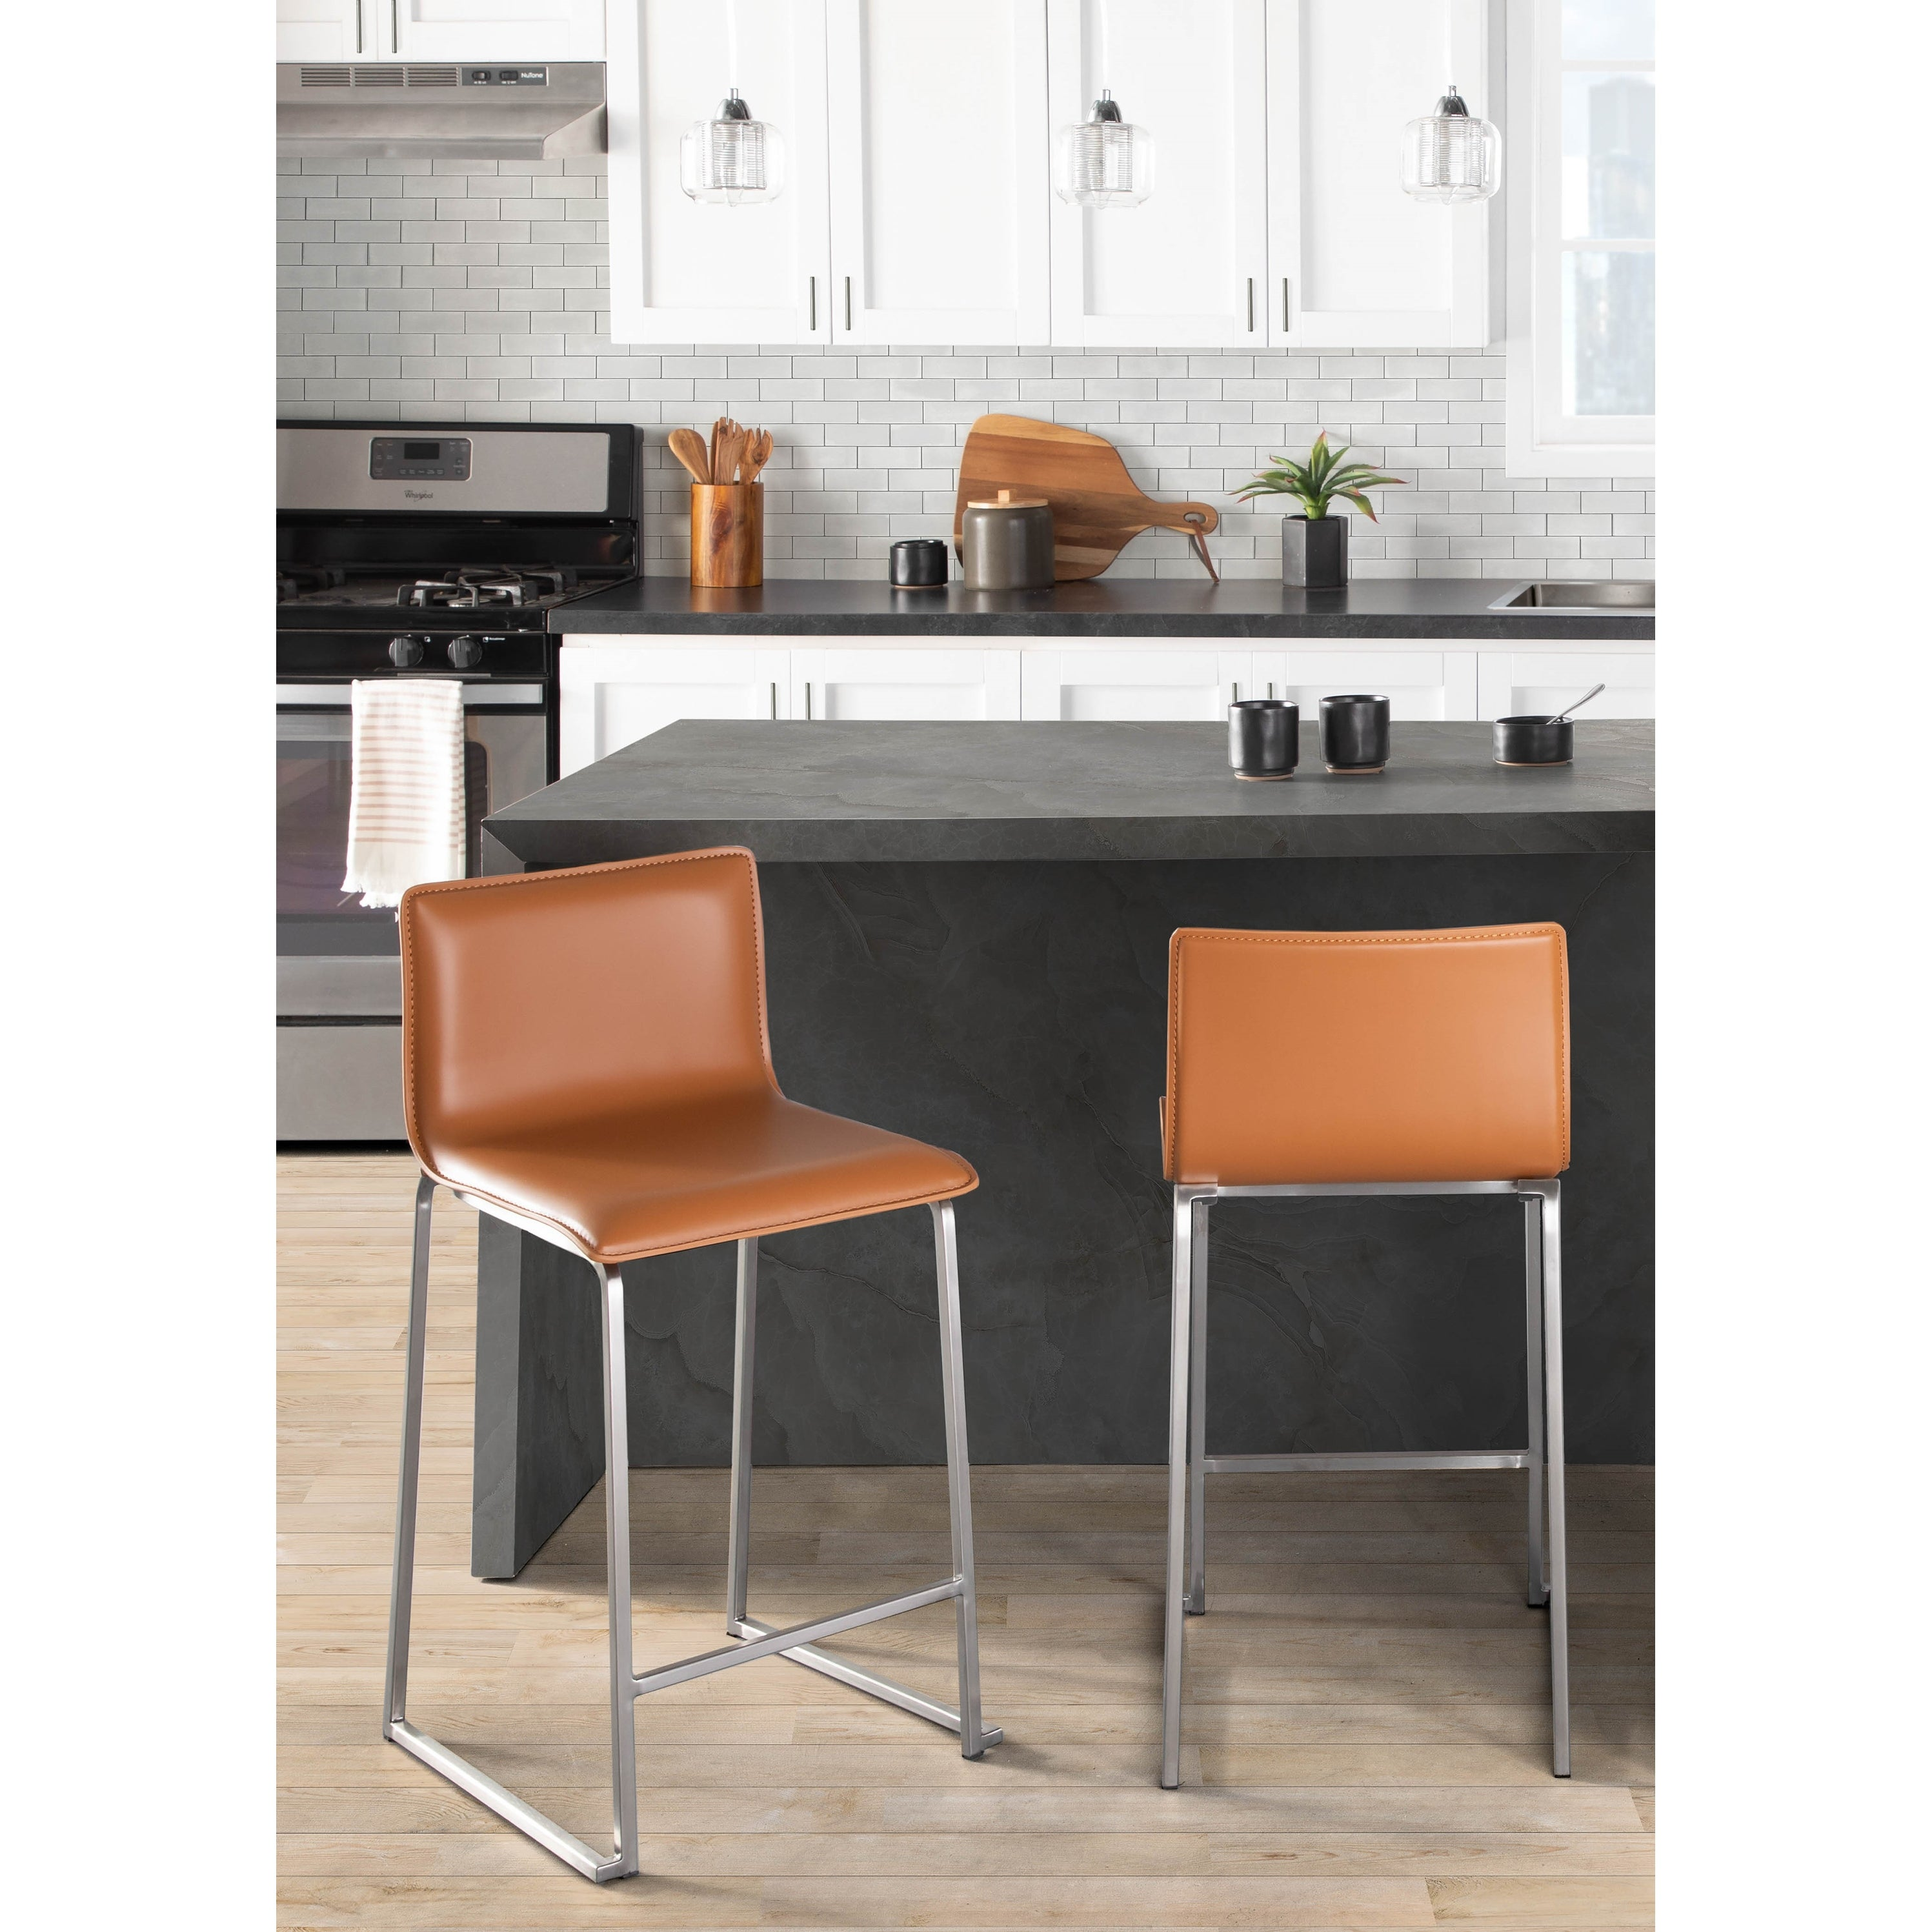 Mara Contemporary Upholstered Counter Stool in Stainless Steel ...